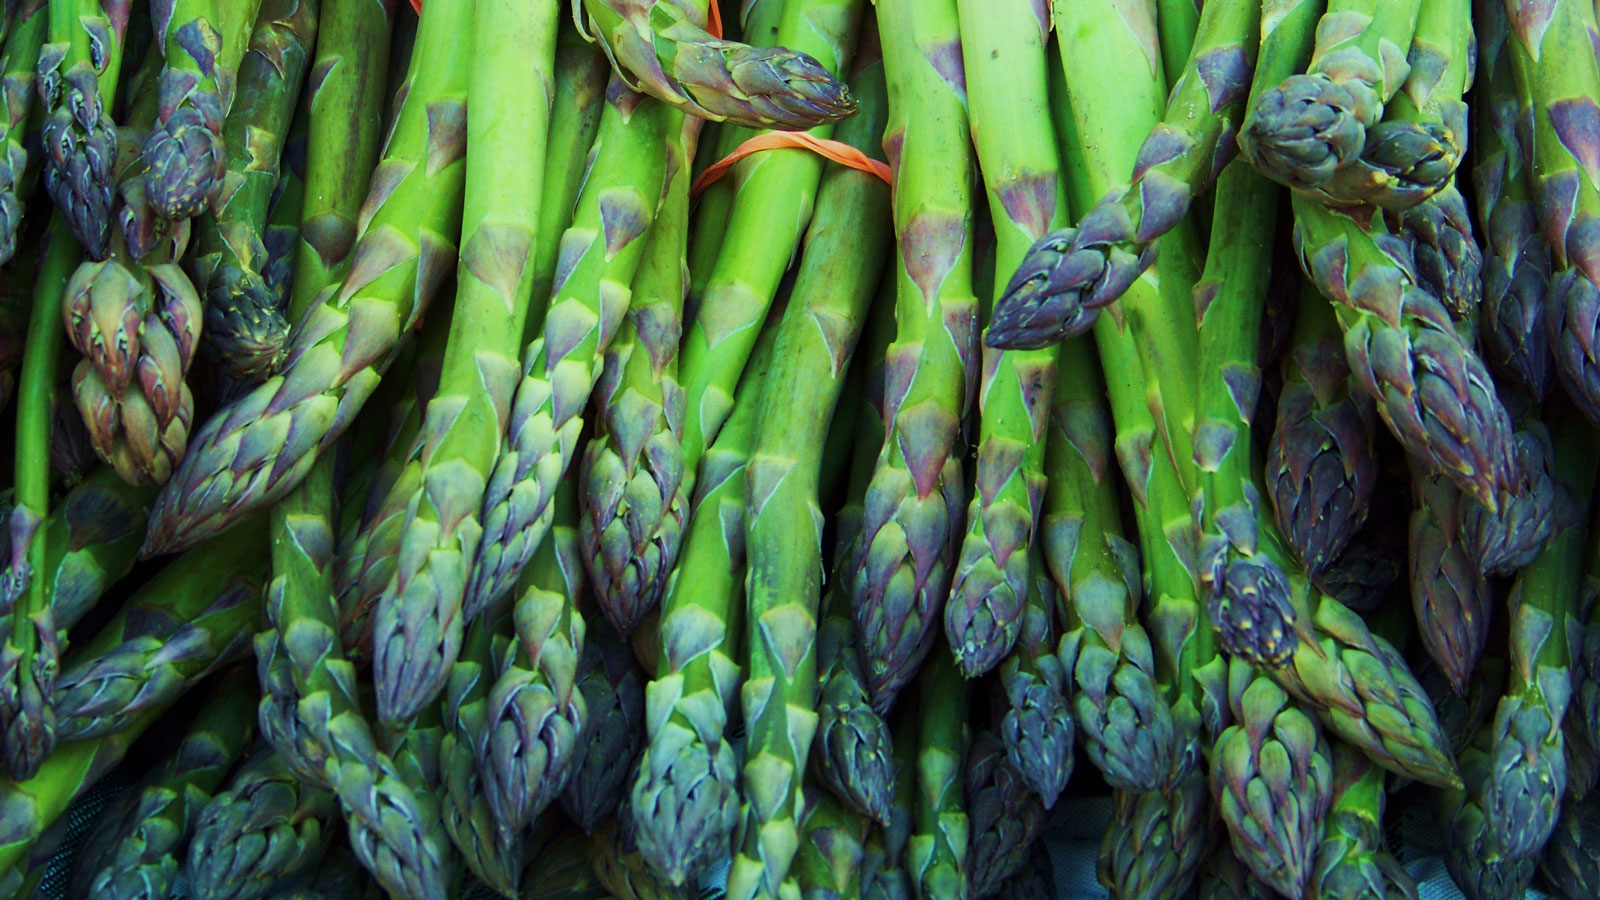 5 Extremely Spring-y Foods to Eat Right Now, According to Chef Anthony Sasso